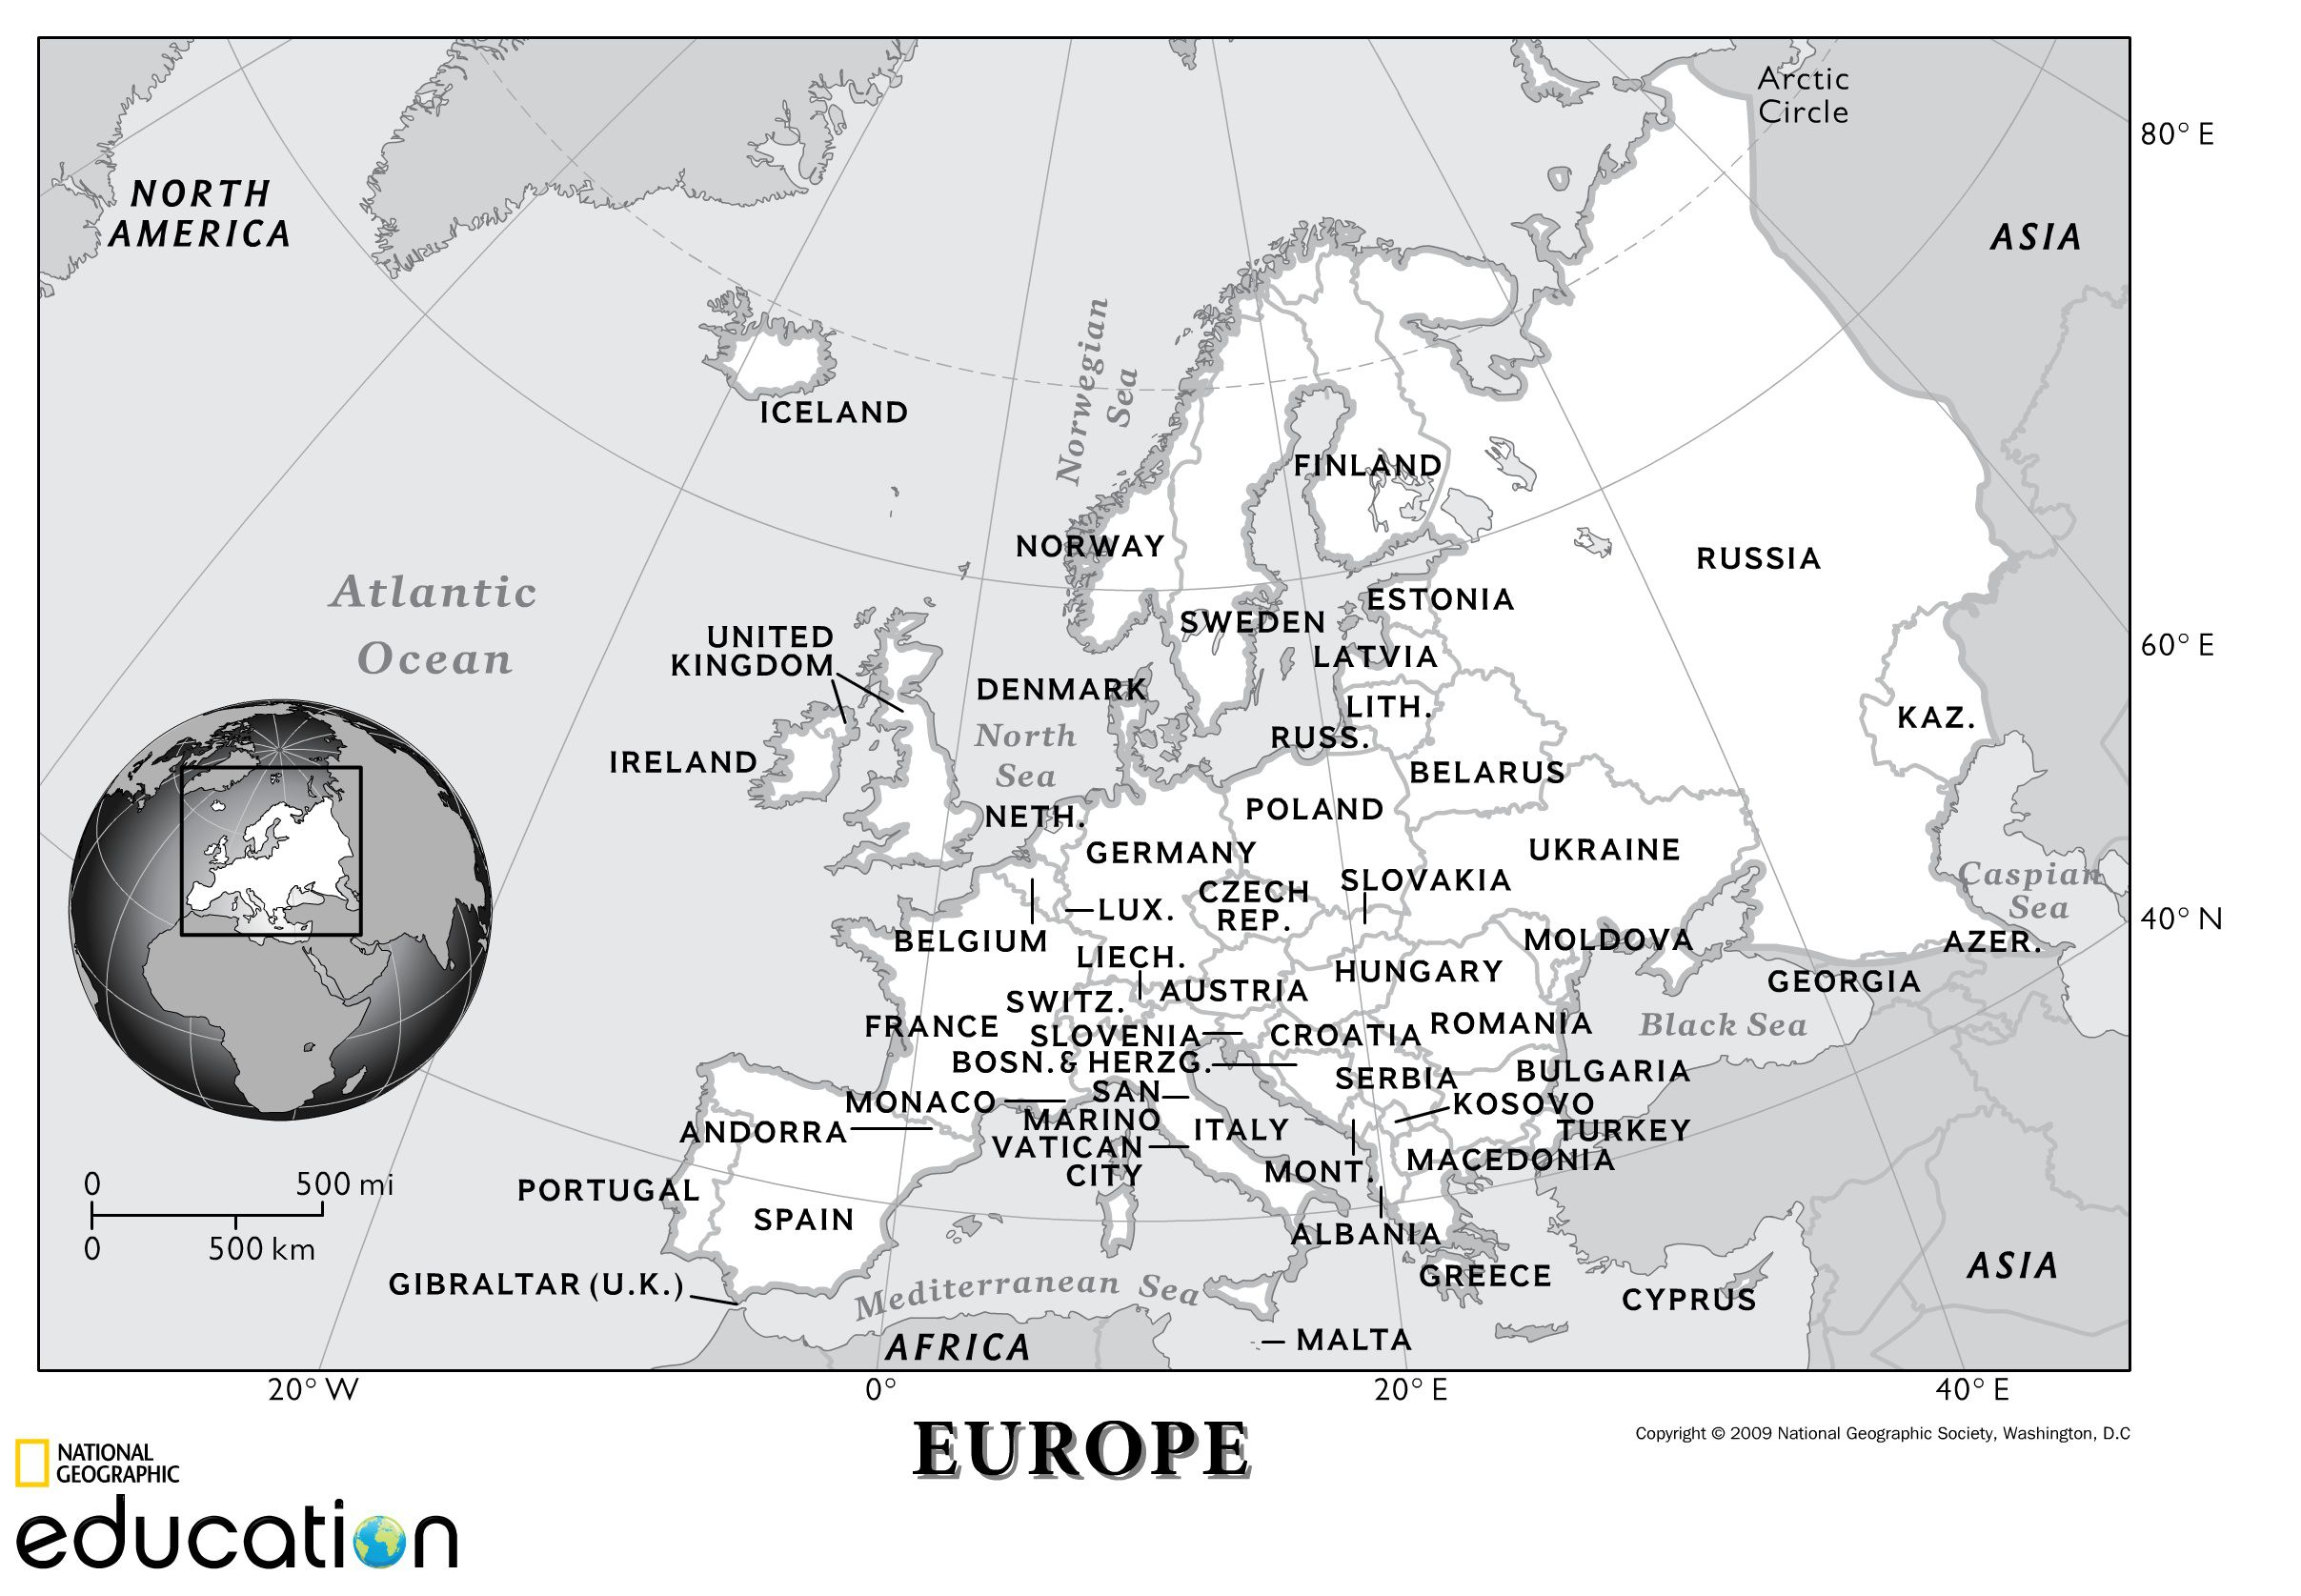 Resources Map Of Europe.Europe Resources National Geographic Society